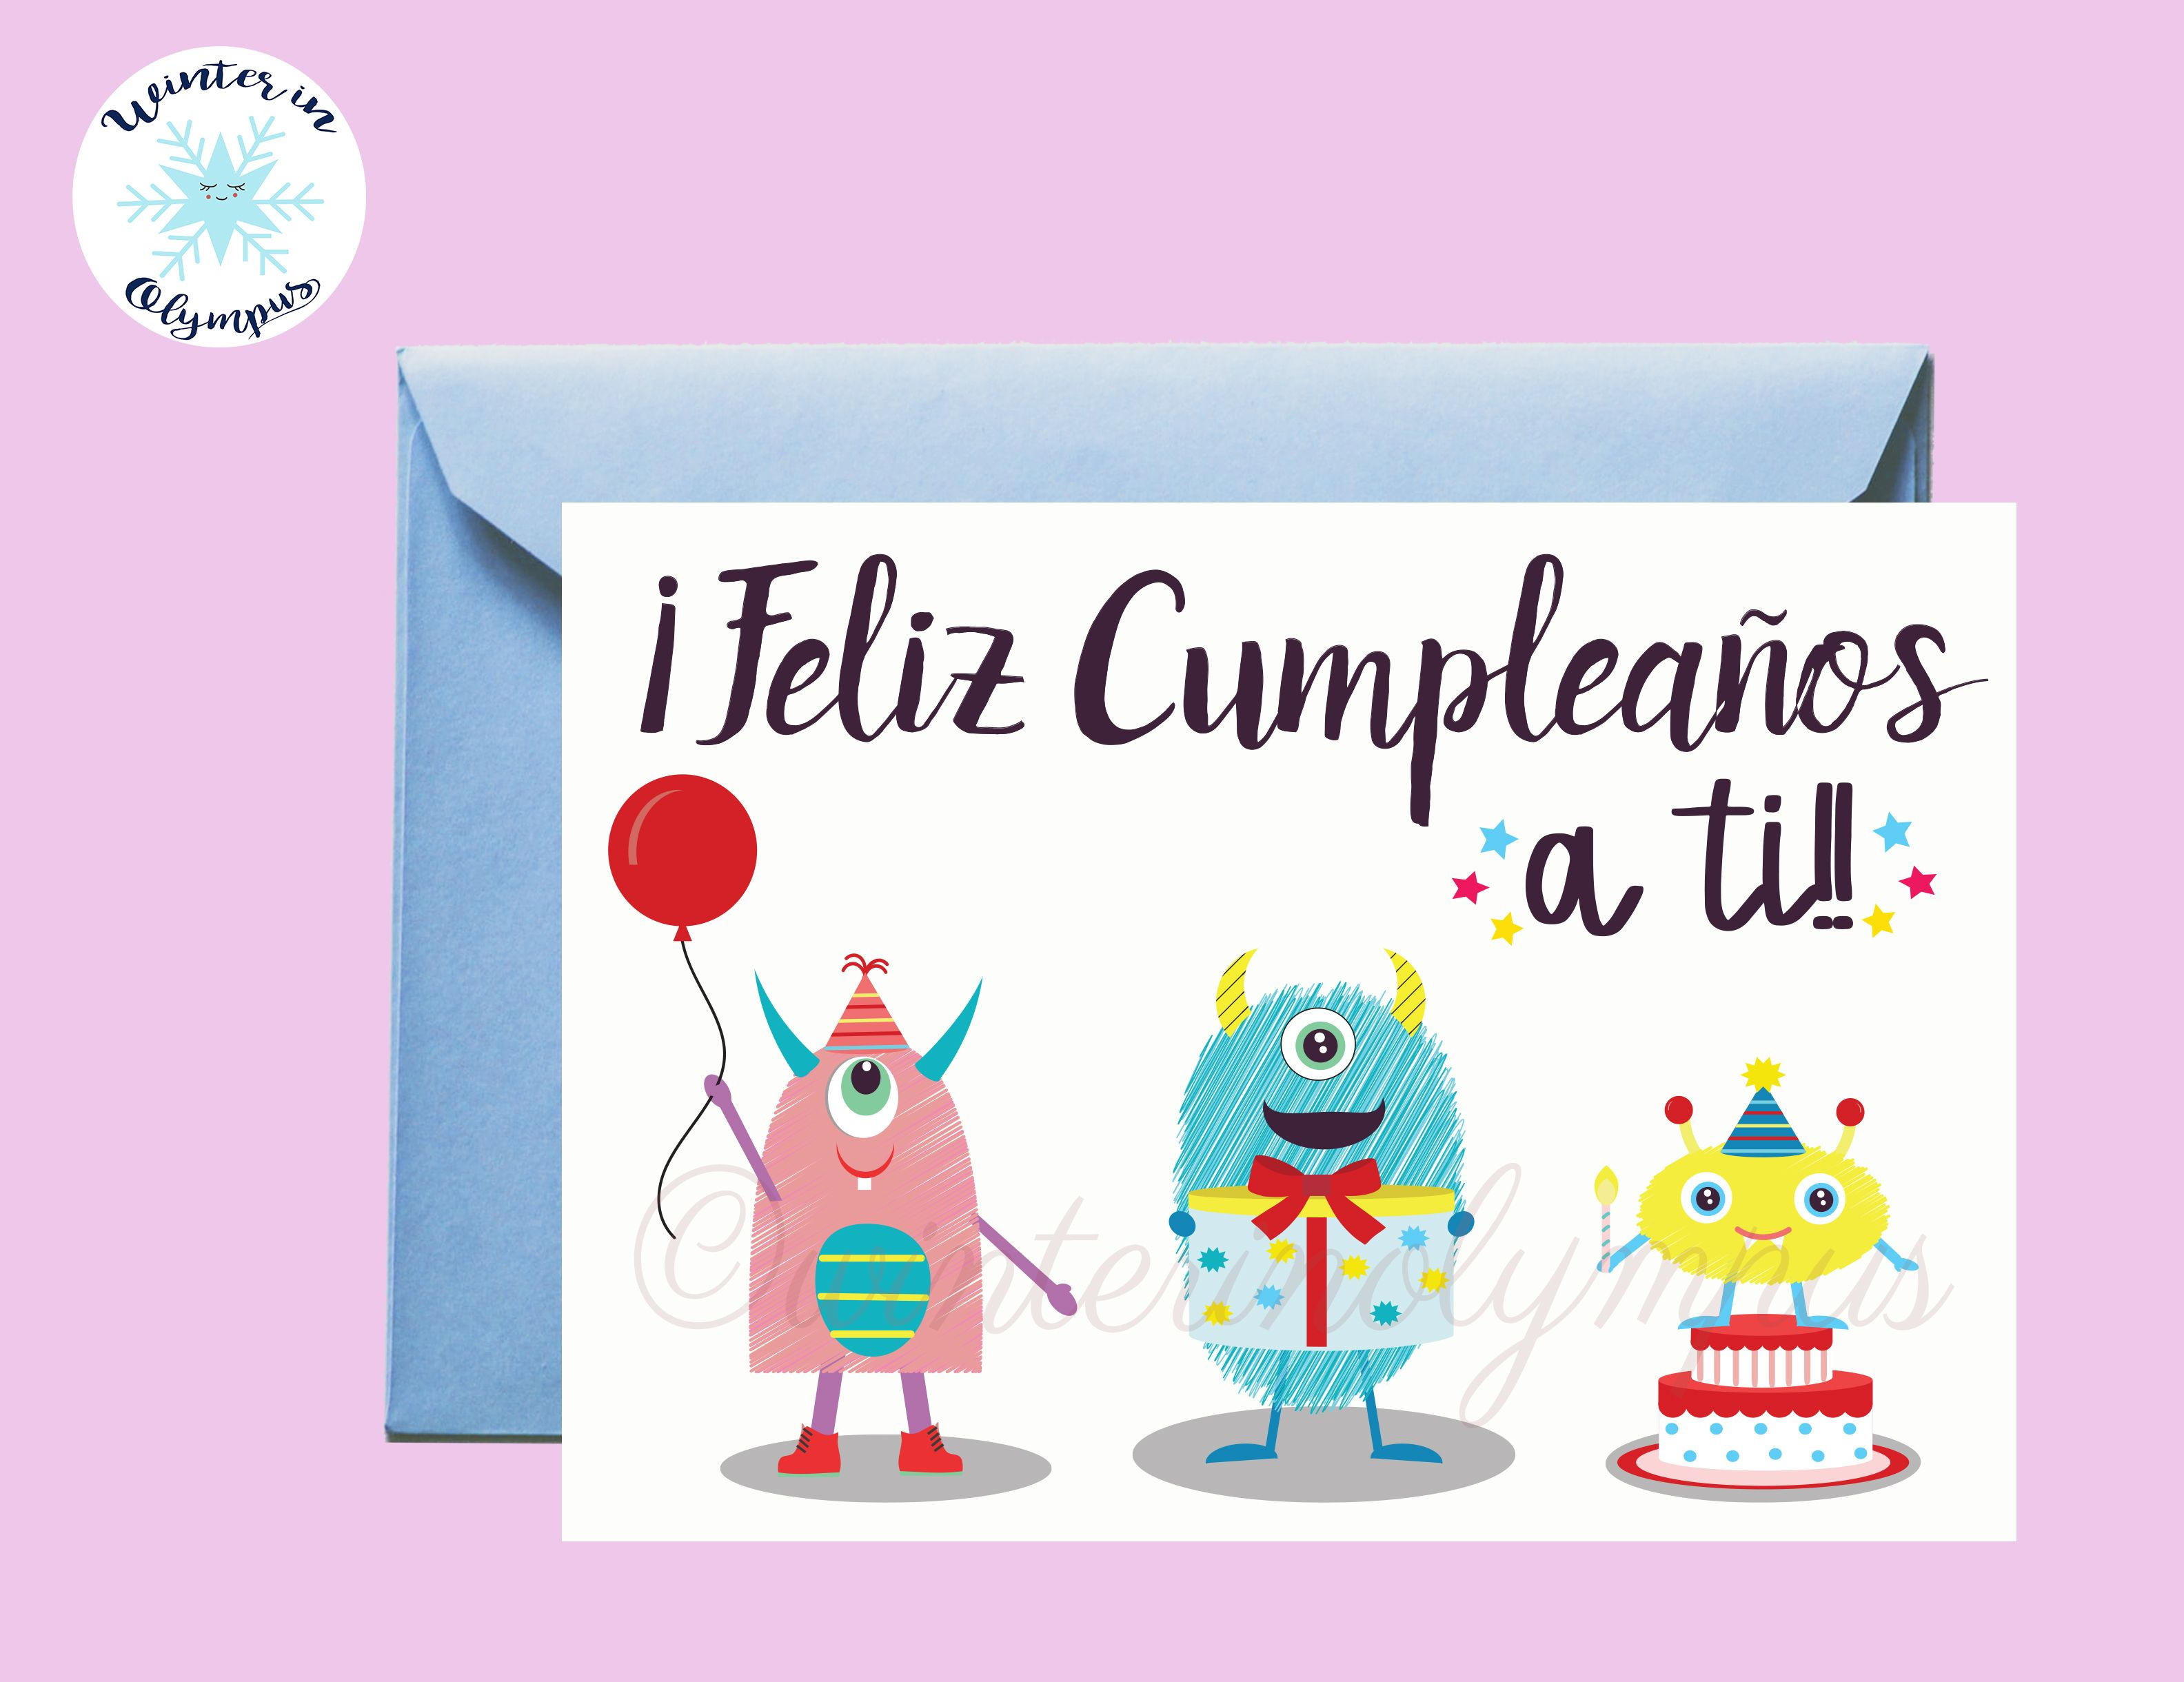 Spanish Birthday Card Printable With Monsters Digital Item Etsy Birthday Card Printable Spanish Birthday Cards Birthday Greeting Cards